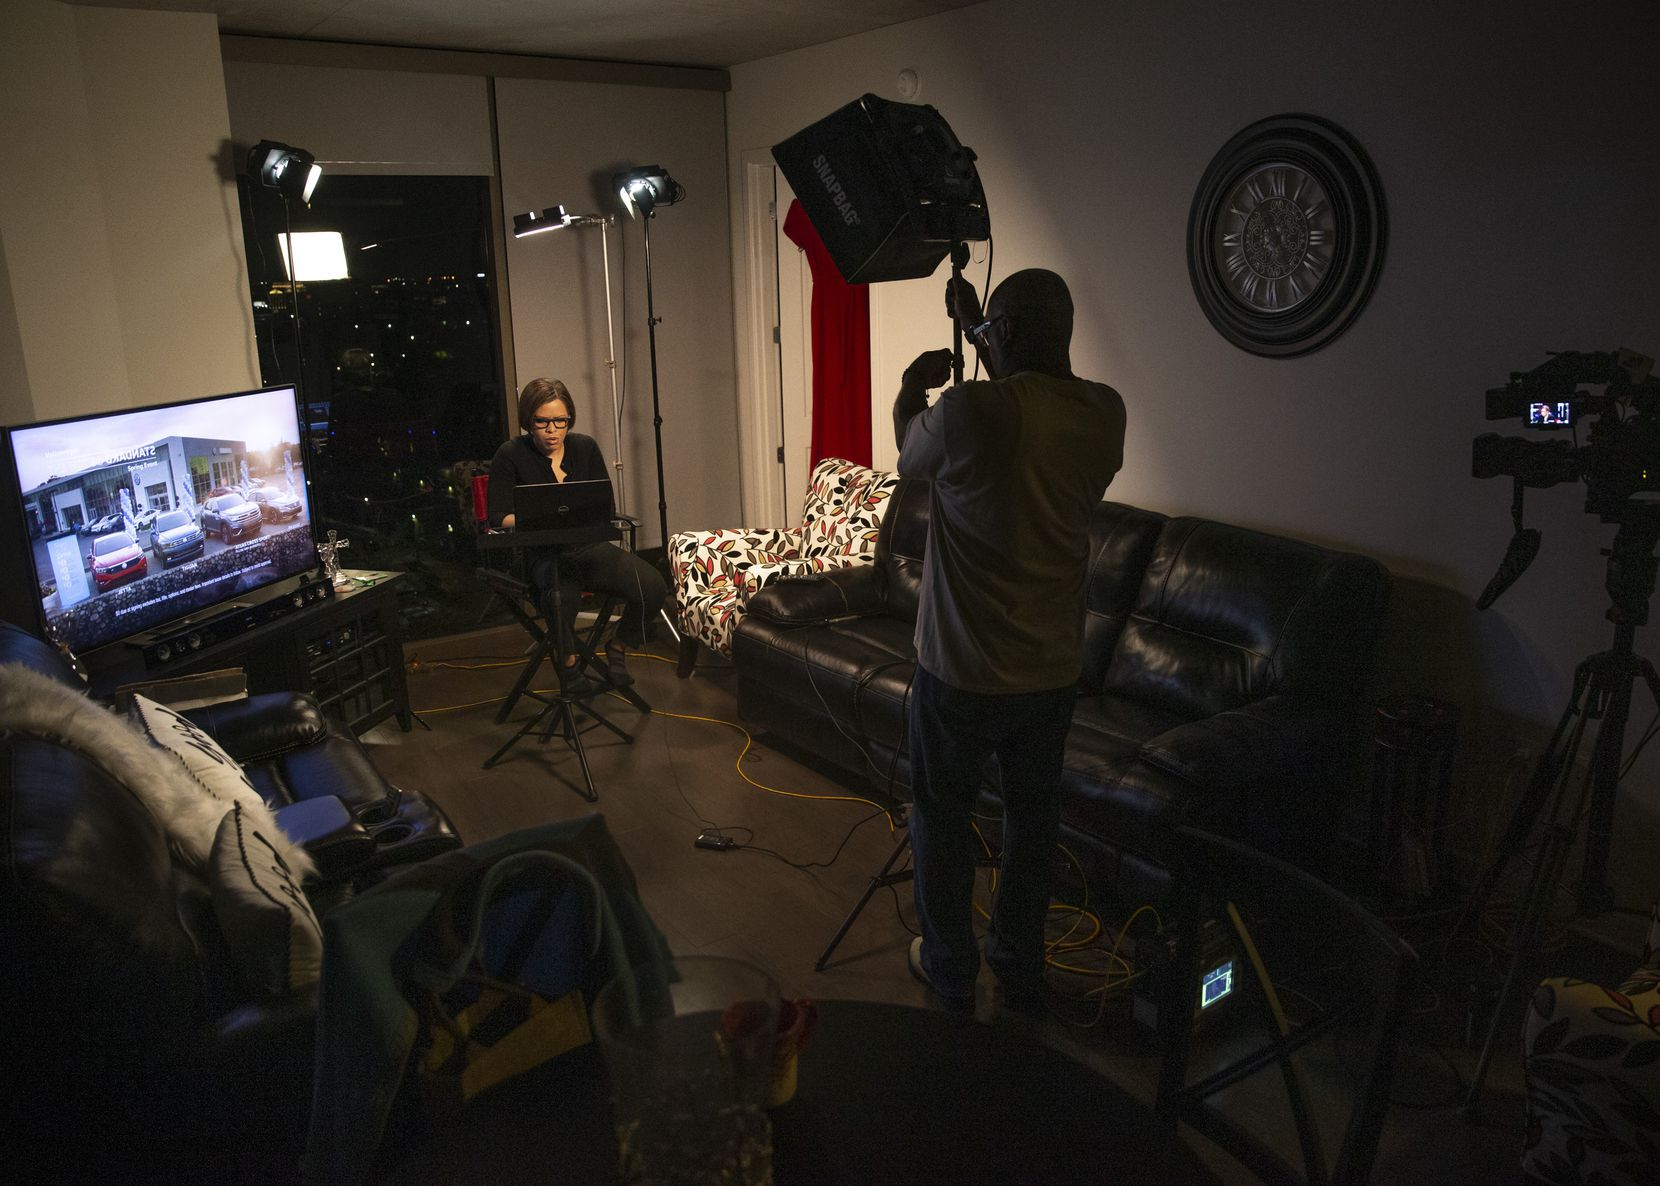 KXAS-TV (NBC5) morning anchor Laura Harris (left) prepares to broadcast live from her apartment home as photojournalist Dennis Holmes adjusts the set-upÕs lighting in Dallas on Friday, March 27, 2020. In light of CDC recommendations to practice social distancing, TV news broadcasts have incorporated segments of anchors working from home in order to set a good example for the community. (Lynda M. Gonzalez/The Dallas Morning News)